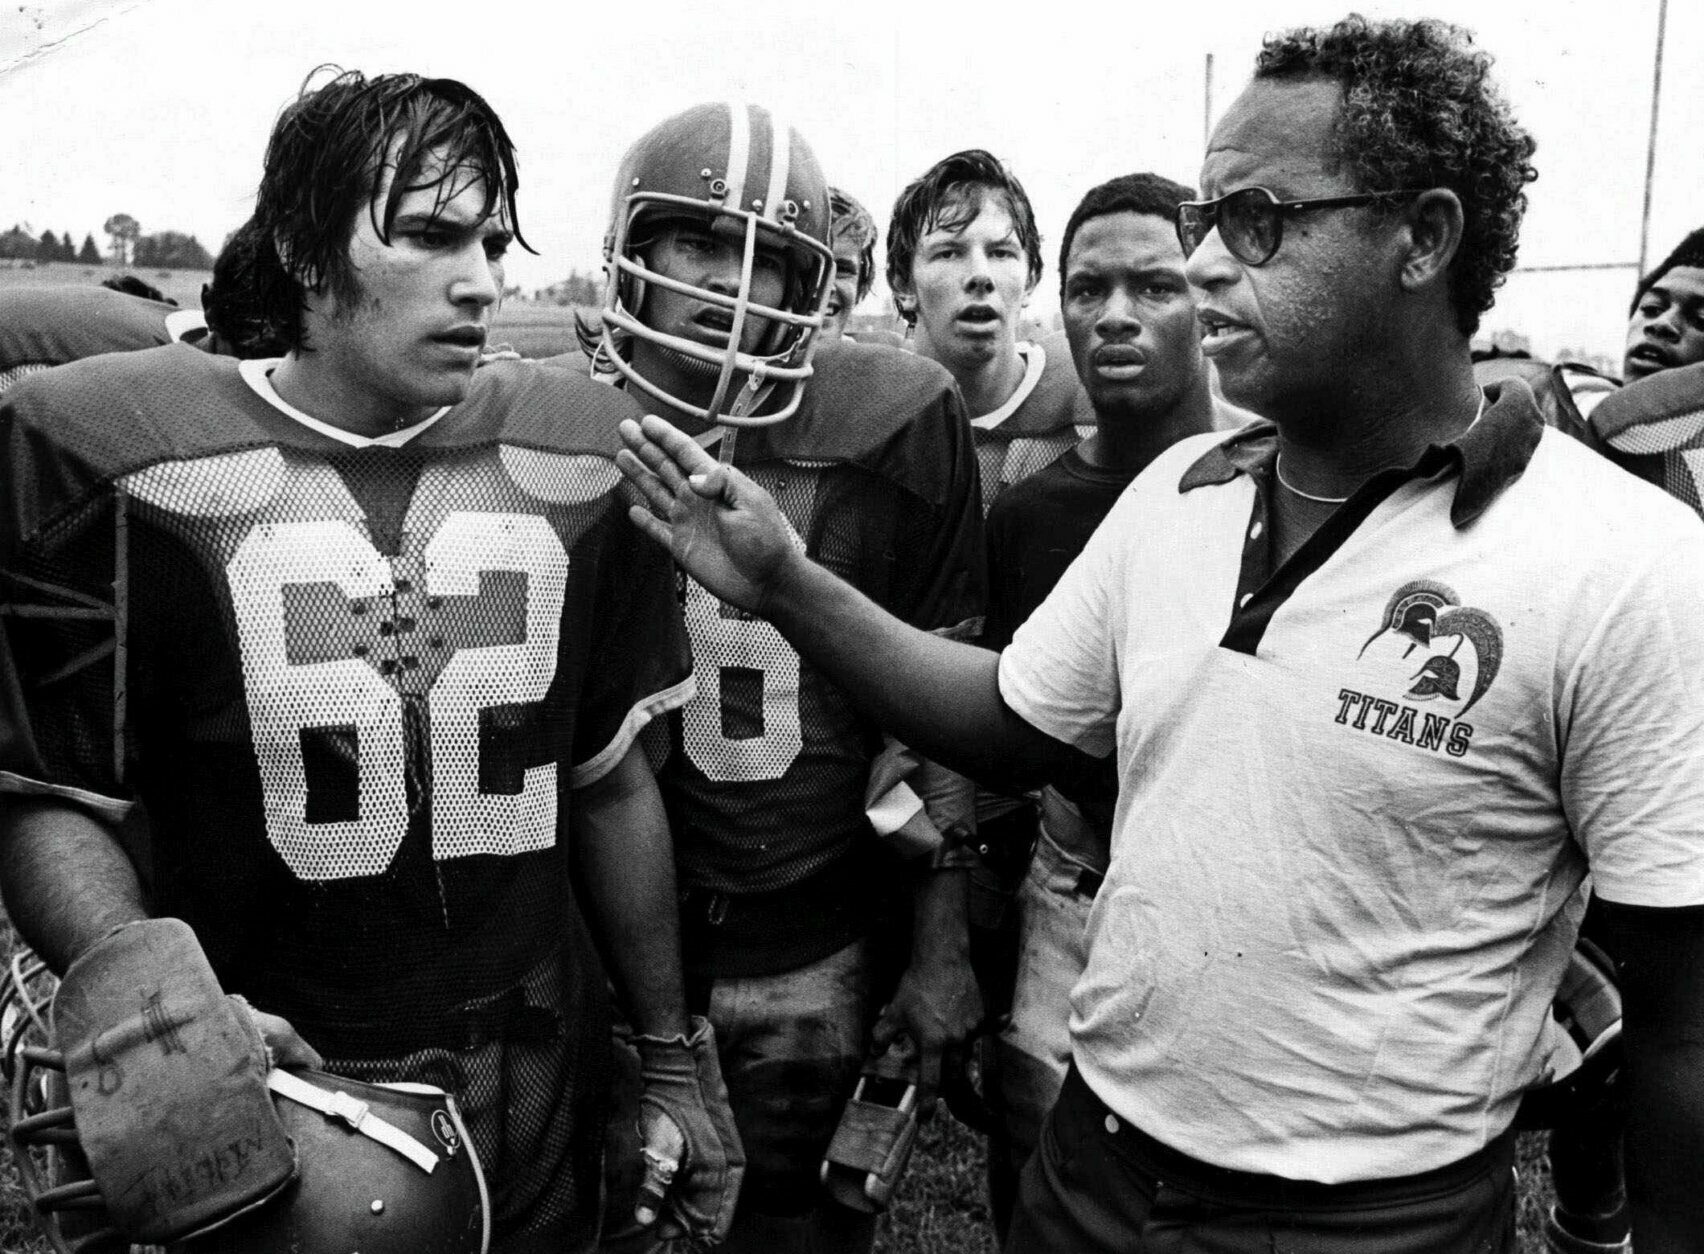 Remember The Titans, Herman Boone, T. C. Williams High School, African American Olympian, Black Olympian, African American Athlete, Black Athlete, KOLUMN Magazine, KOLUMN, KINDR'D Magazine, KINDR'D, Willoughby Avenue, Wriit,